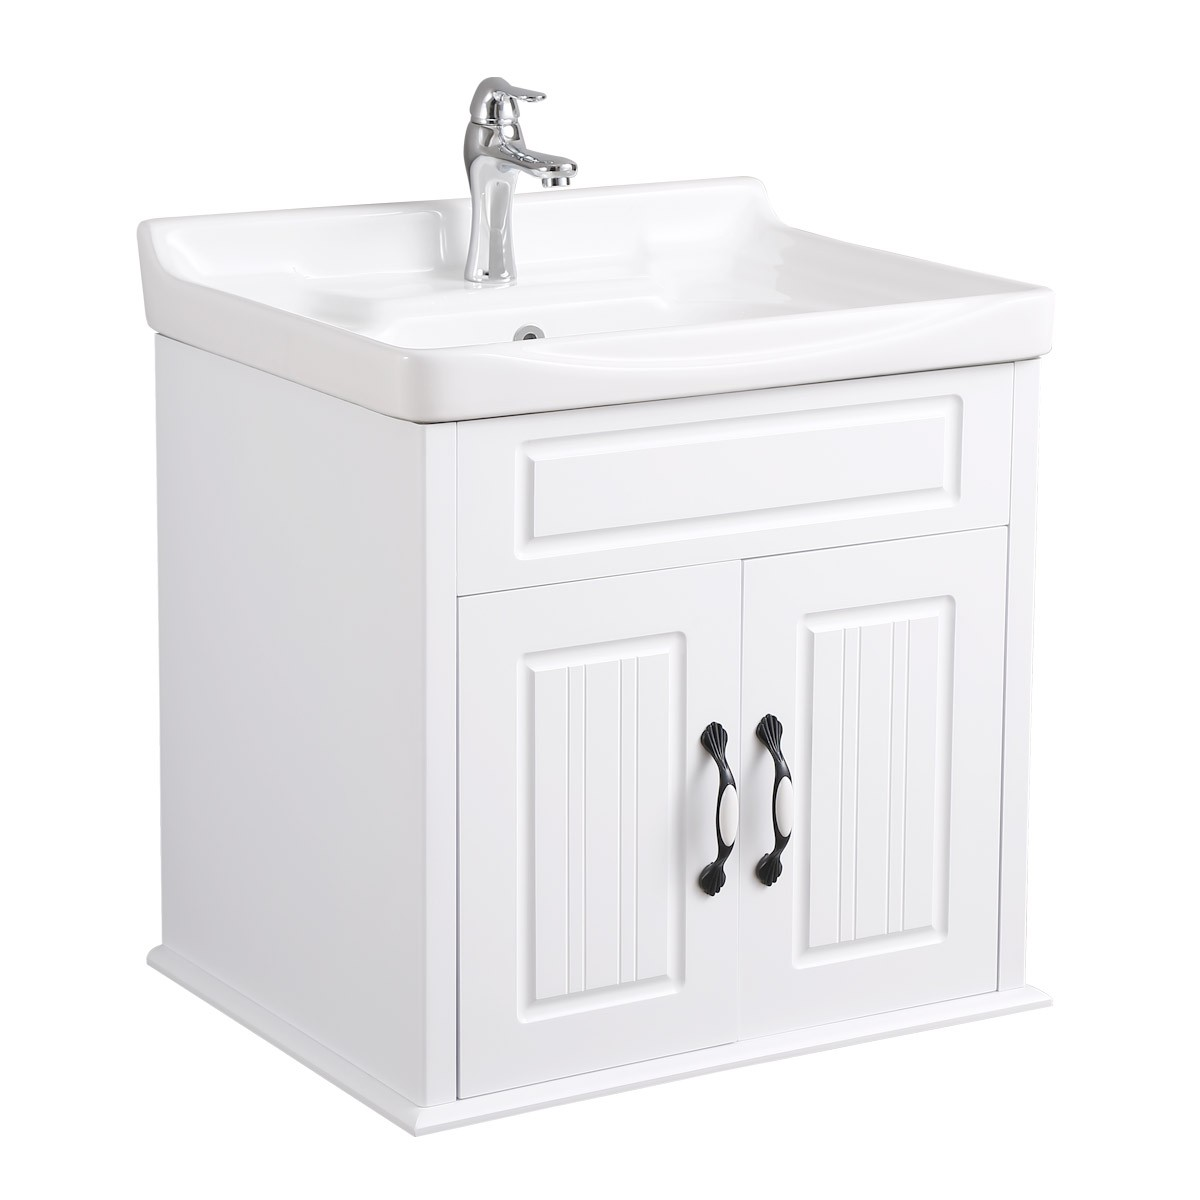 Renovator S Supply White Bathroom Wall Mount Vanity Cabinet Sink With Faucet And Drain